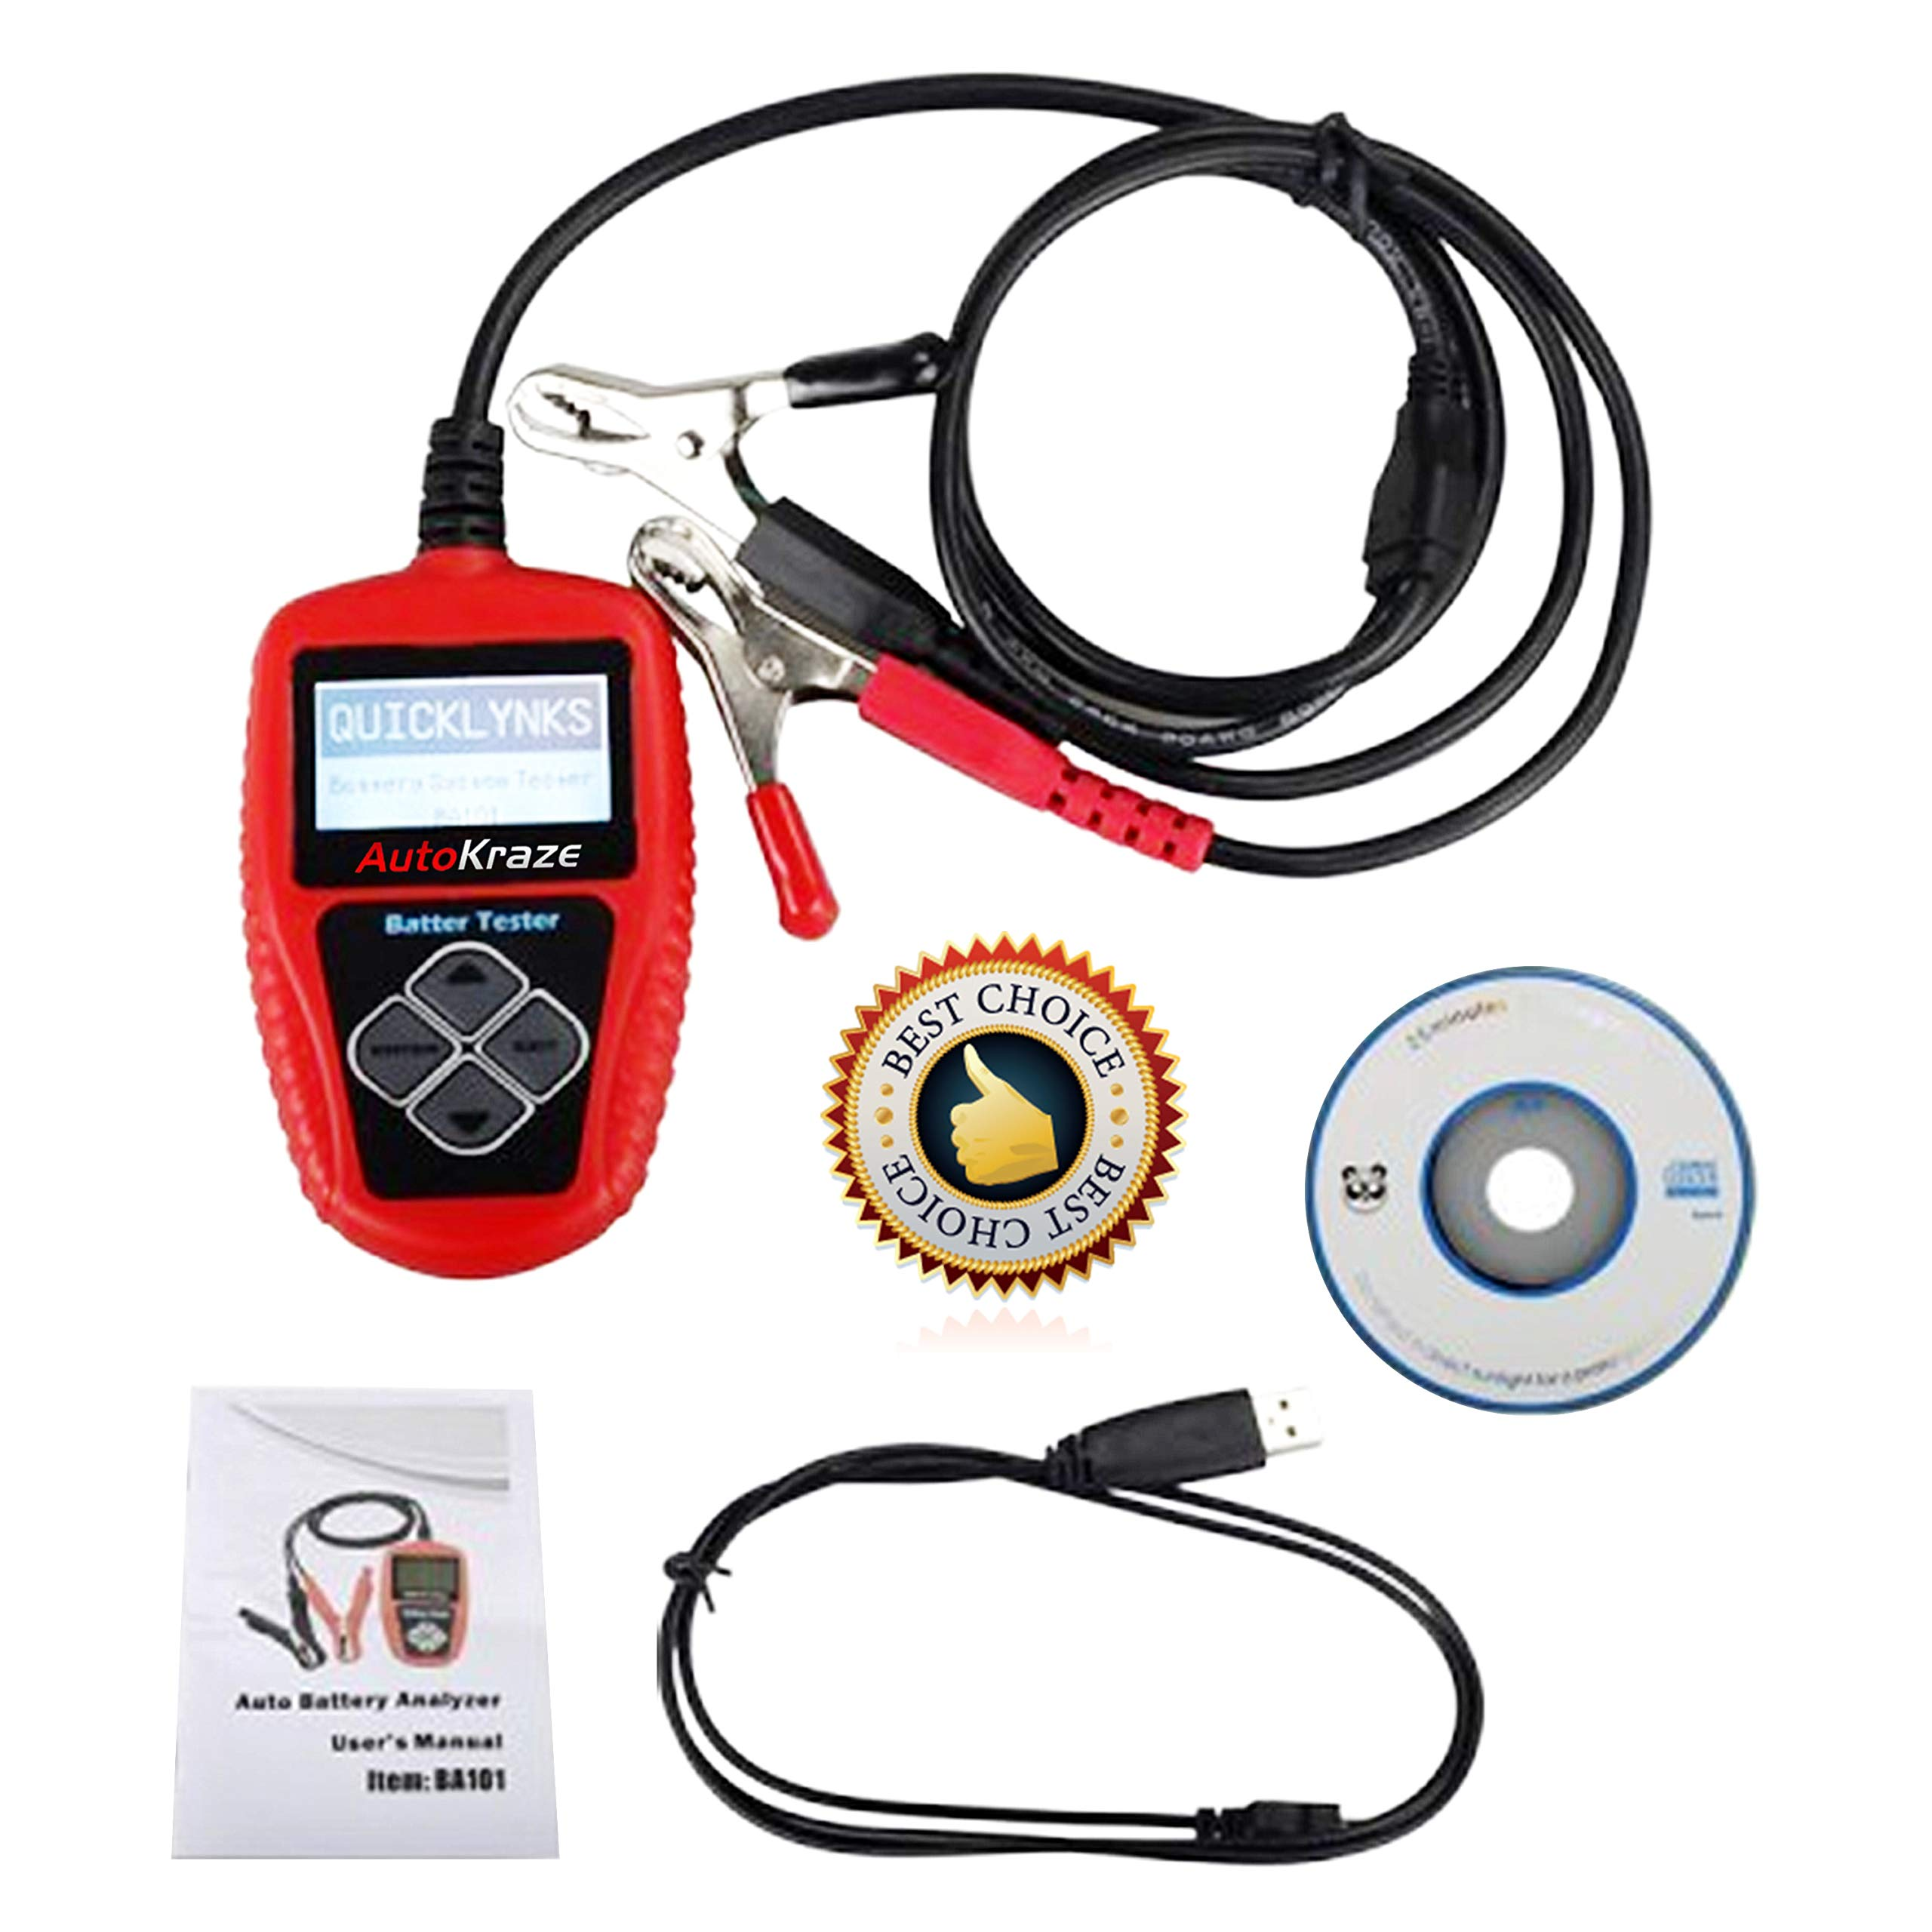 AutoKraze BA101 Automotive Battery Load Tester 12V 100-2000 CCA Bad Cell Test Analyzer Tool Directly Test Car, Boat, and Motorcycle Battery Status Portable, Digital and Rechargeable Battery Tester by AutoKraze (Image #3)